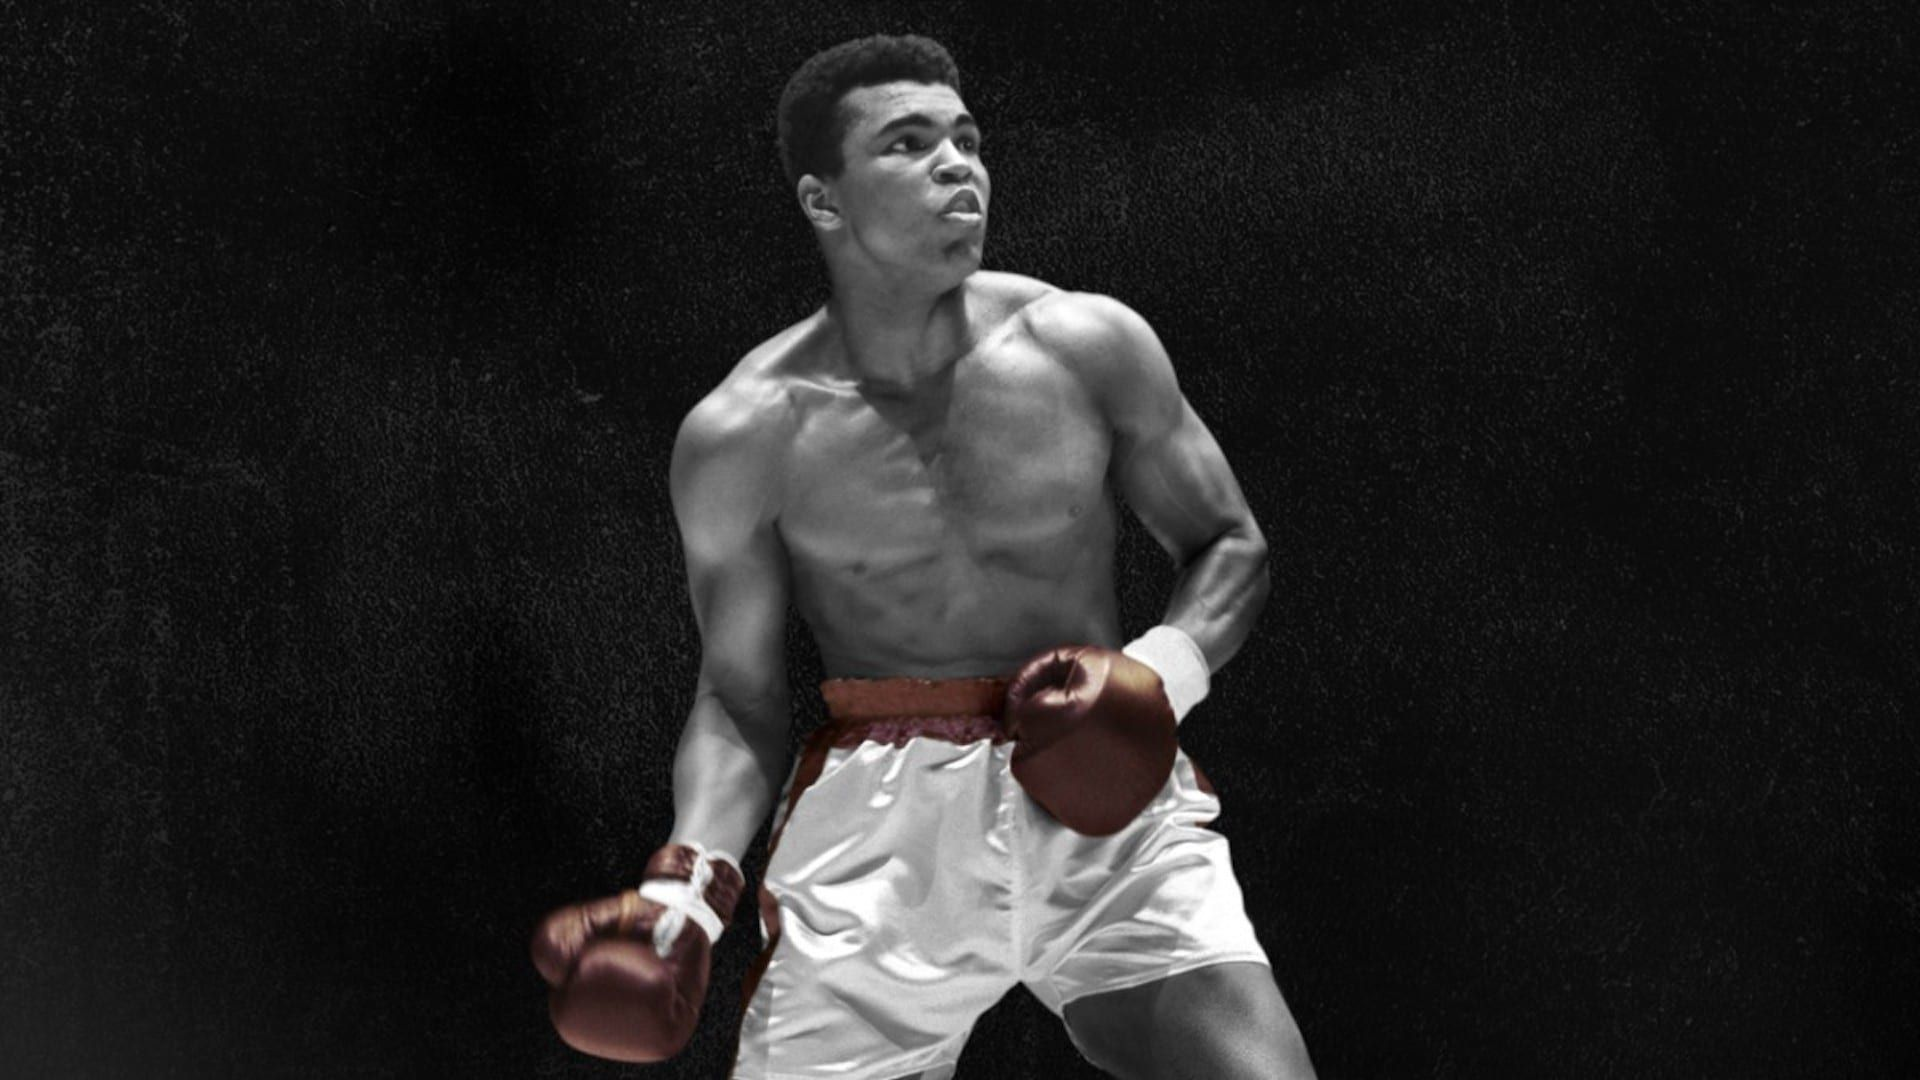 Float like a butterfly, sting like a bee. Rest In Peace